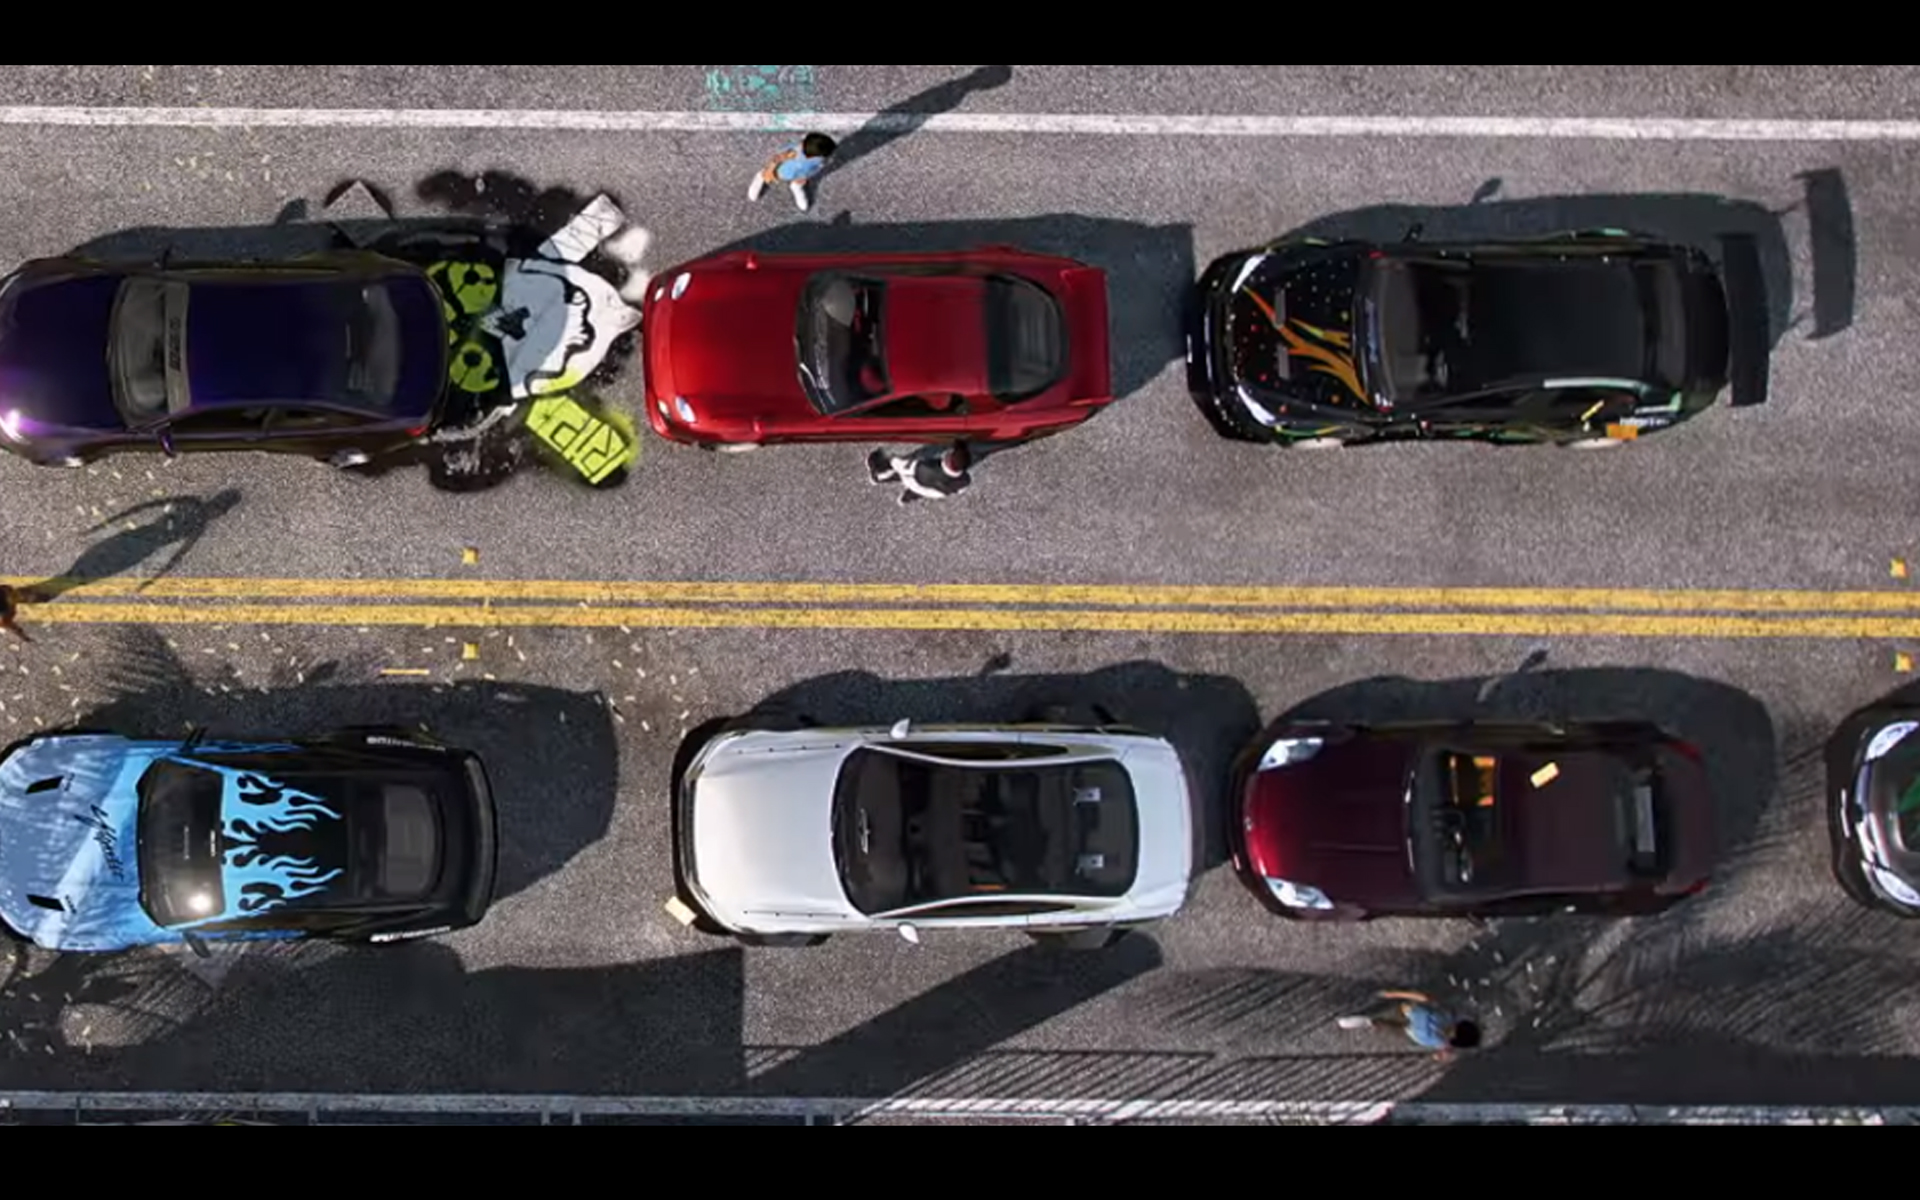 NFS-Heat-2019-screen-trailer-top-view-grid-start-zoom-end